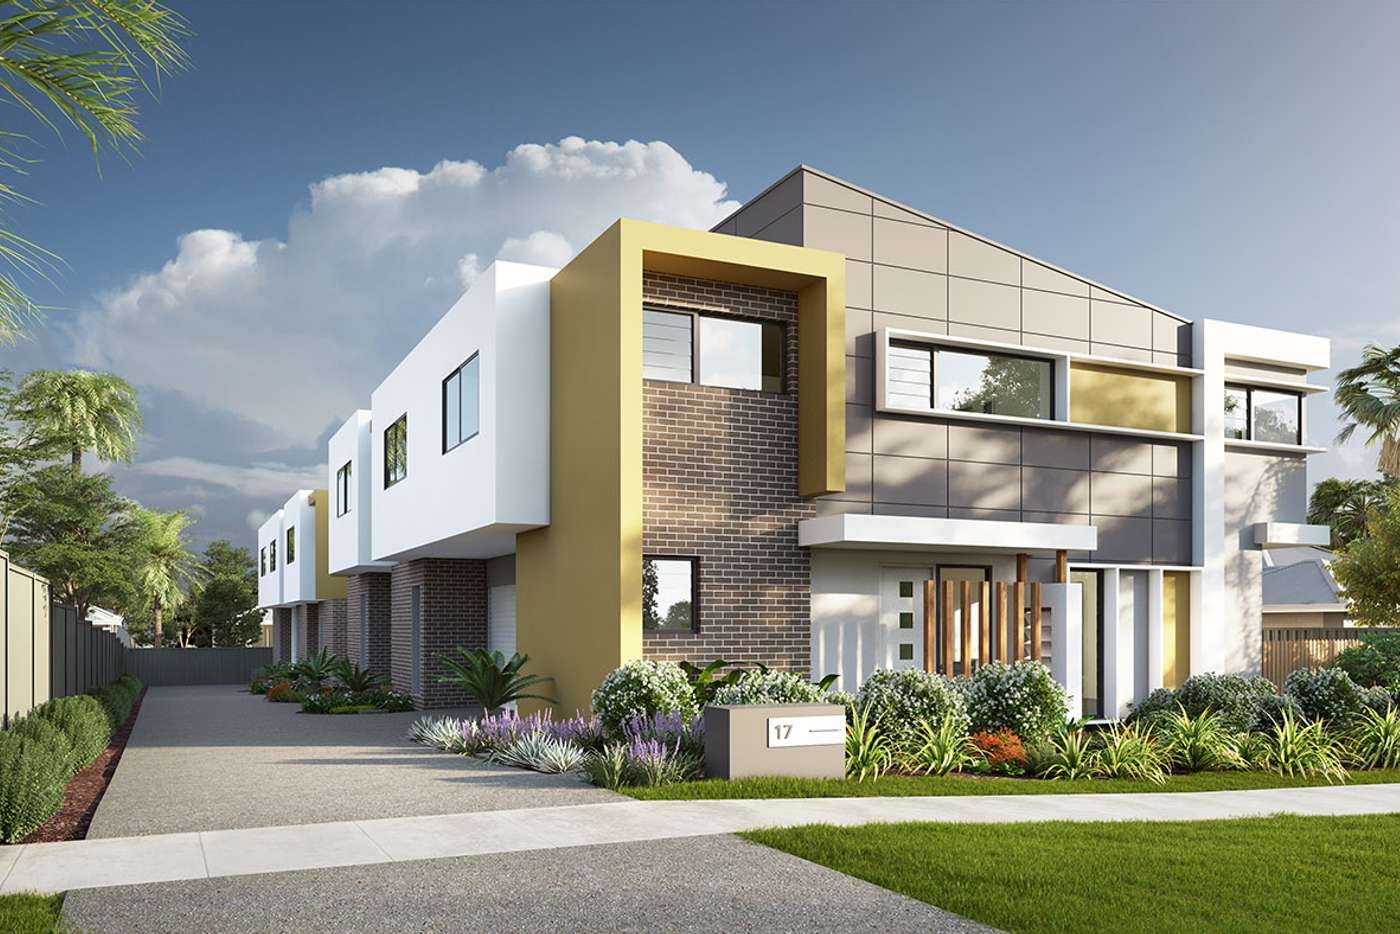 Main view of Homely townhouse listing, 2/17 High Street, Waratah NSW 2298